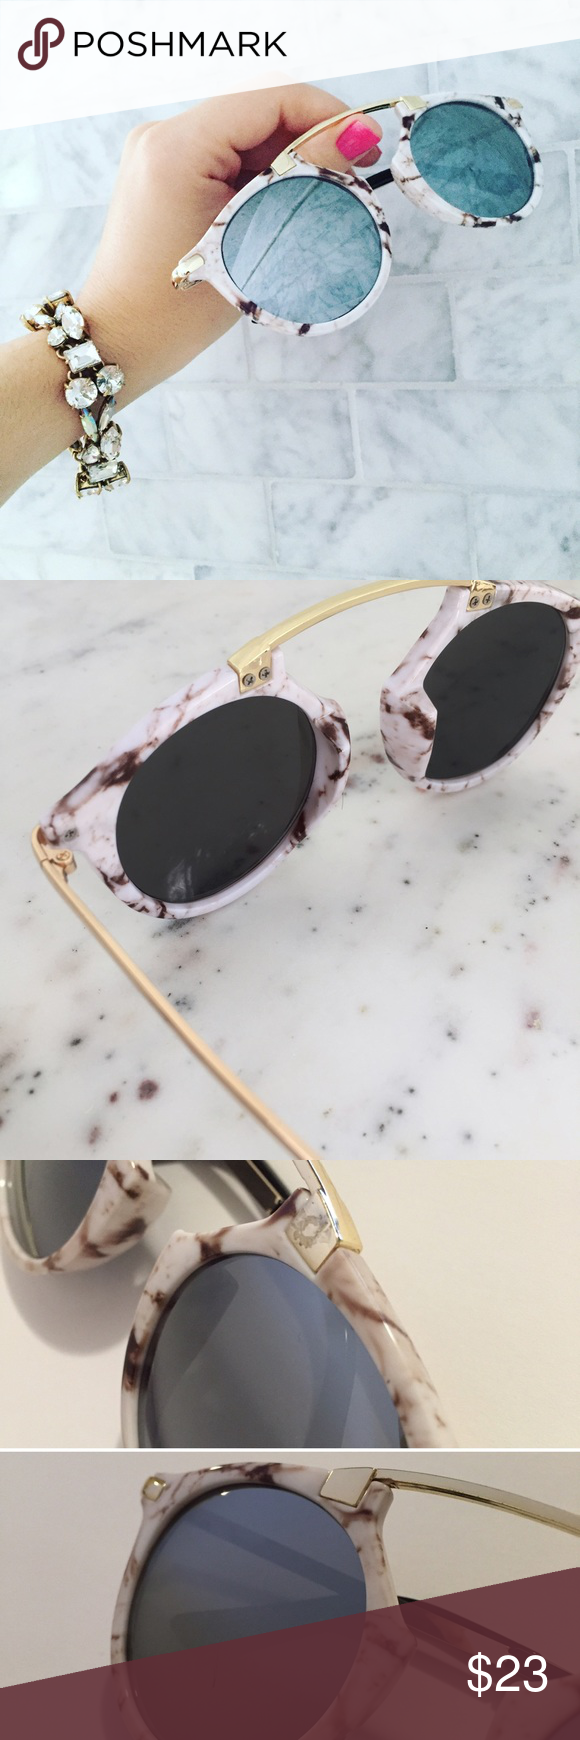 Sienna Sunglasse White Marble Silver Cute Accessories Mirroring And Paraphrasing